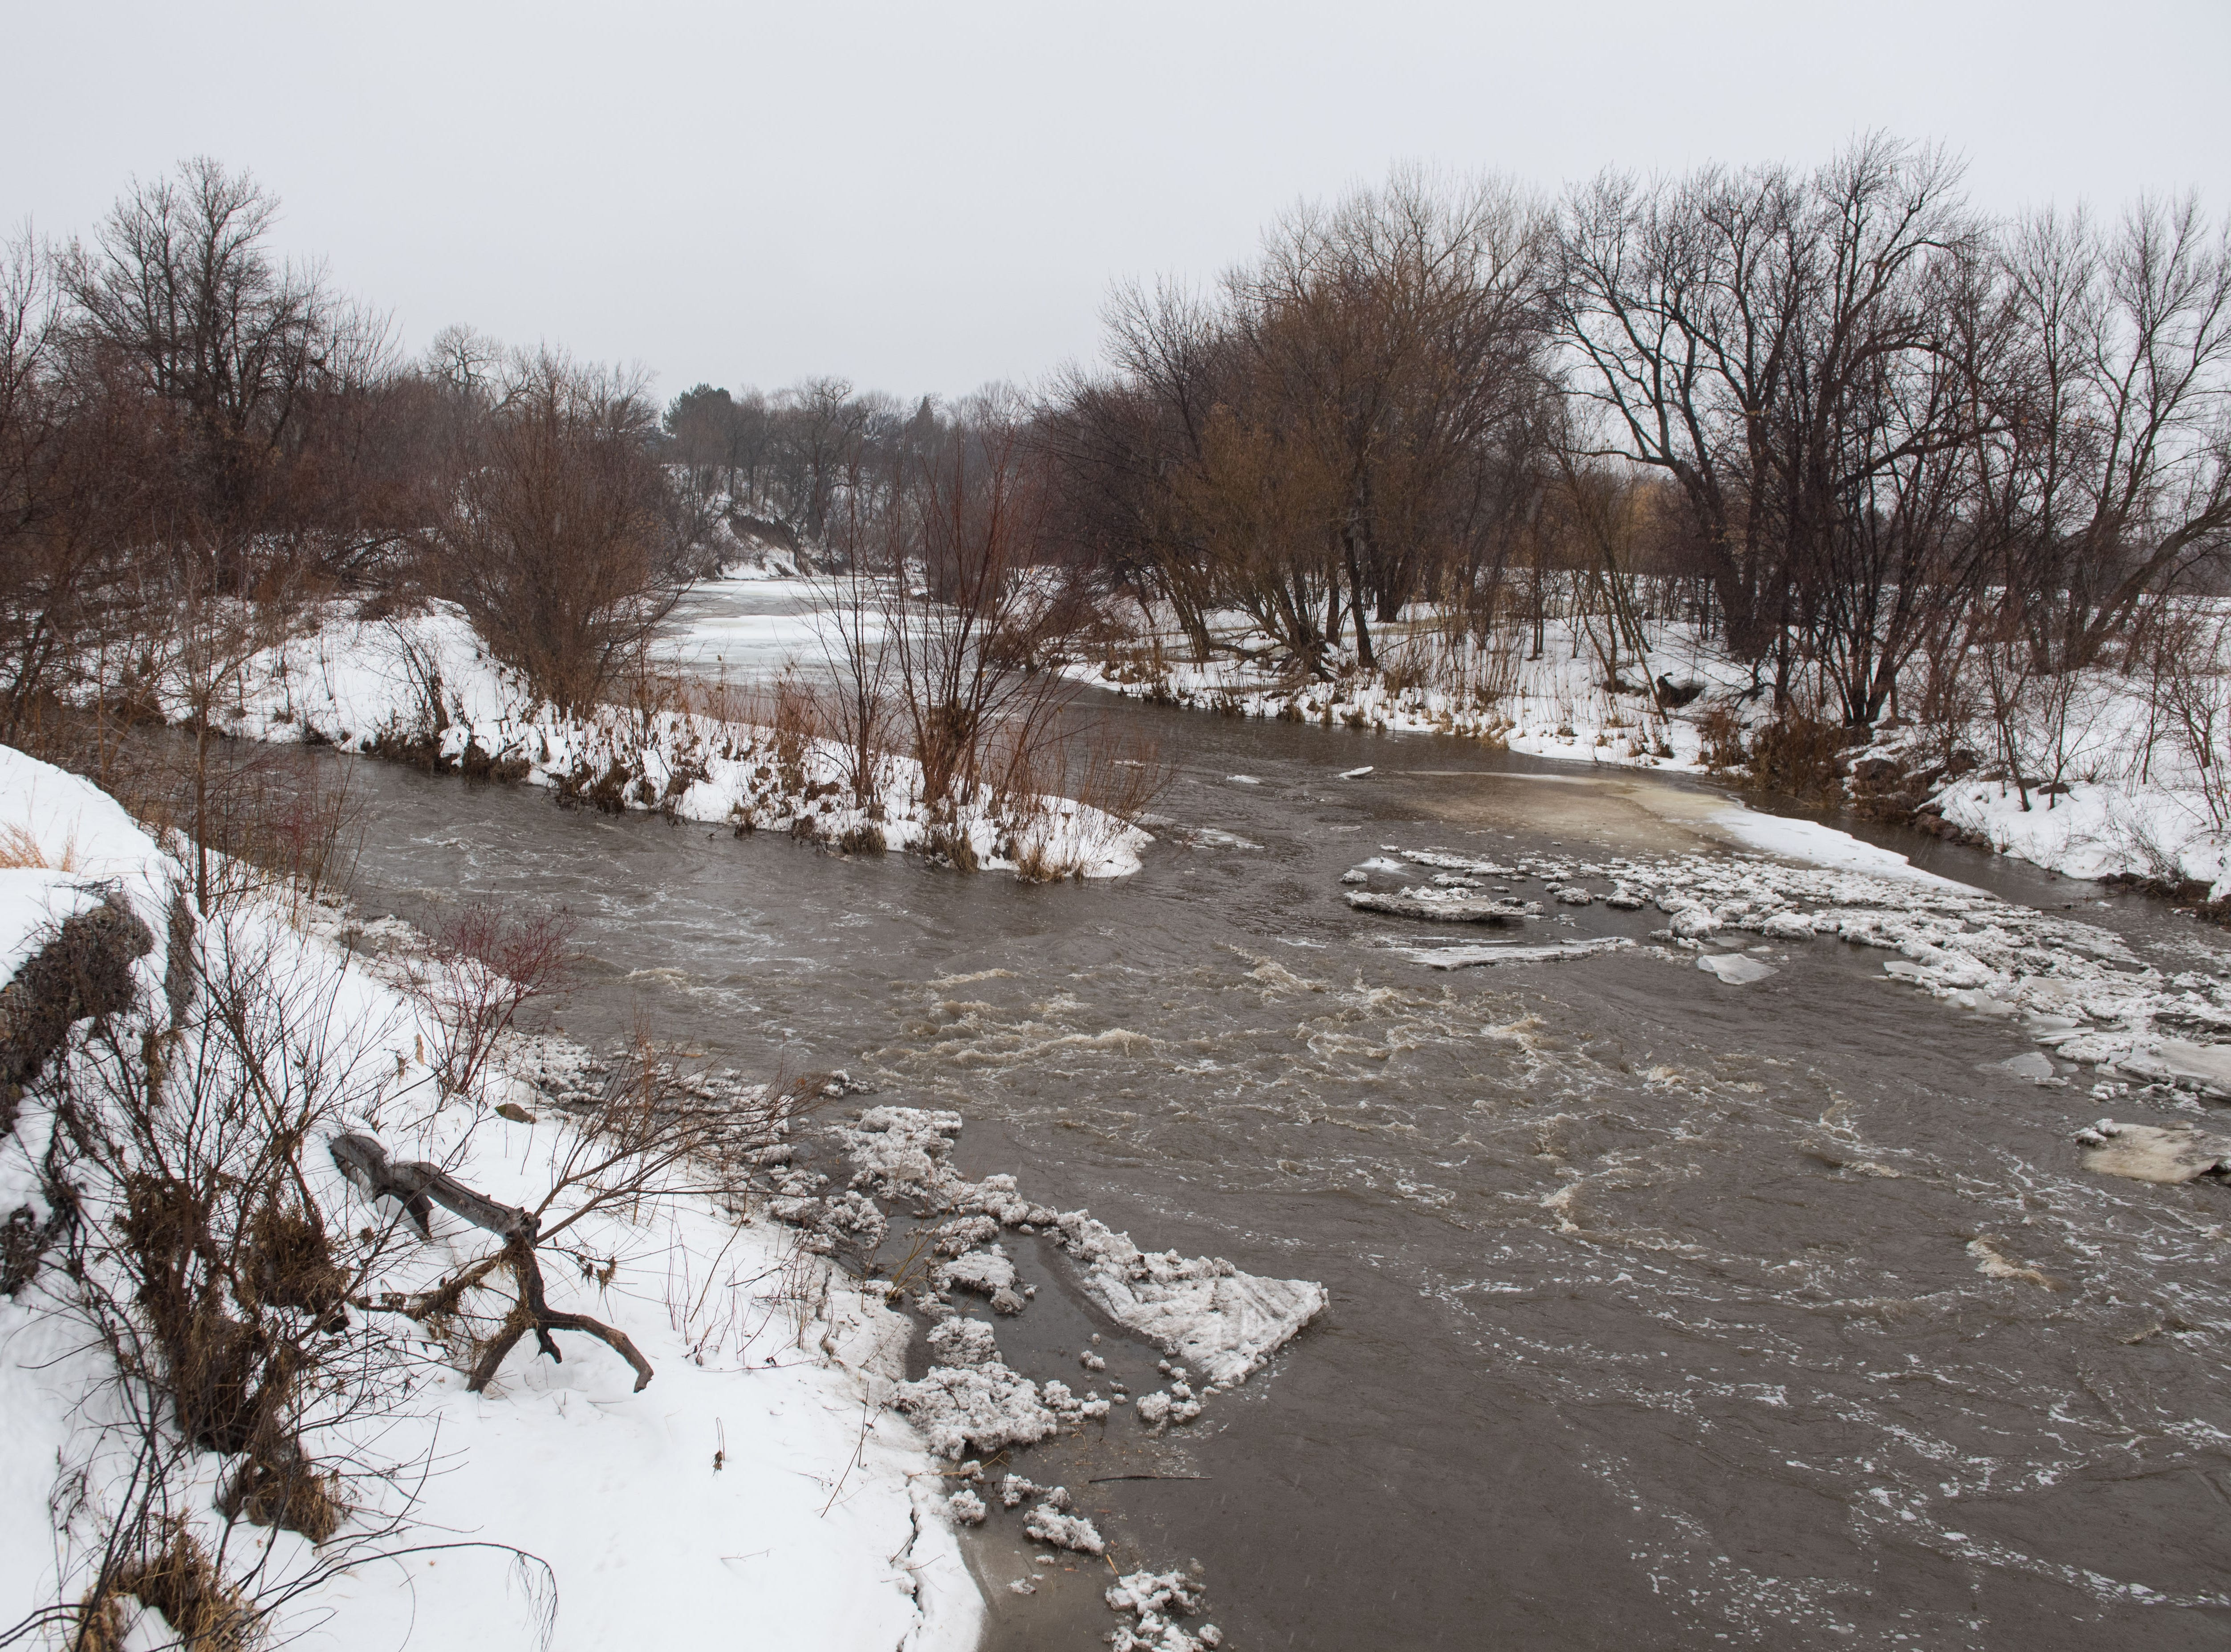 Skunk Creek at Dunham Park in Sioux Falls, S.D. is shown Wednesday, March 13, 2019.